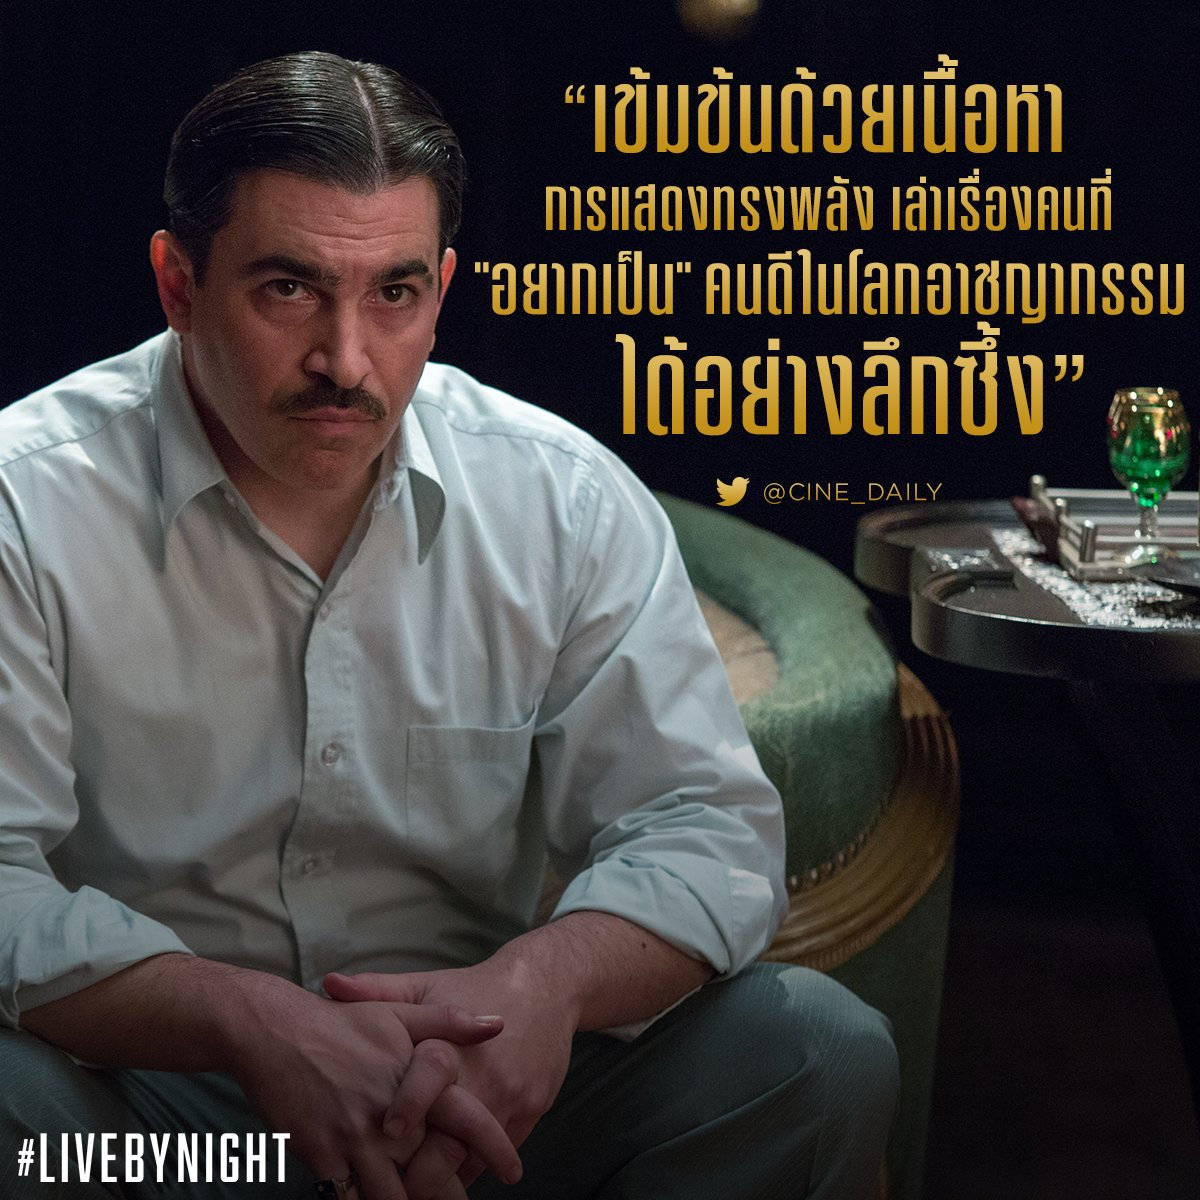 #LiveByNight: Live By Night